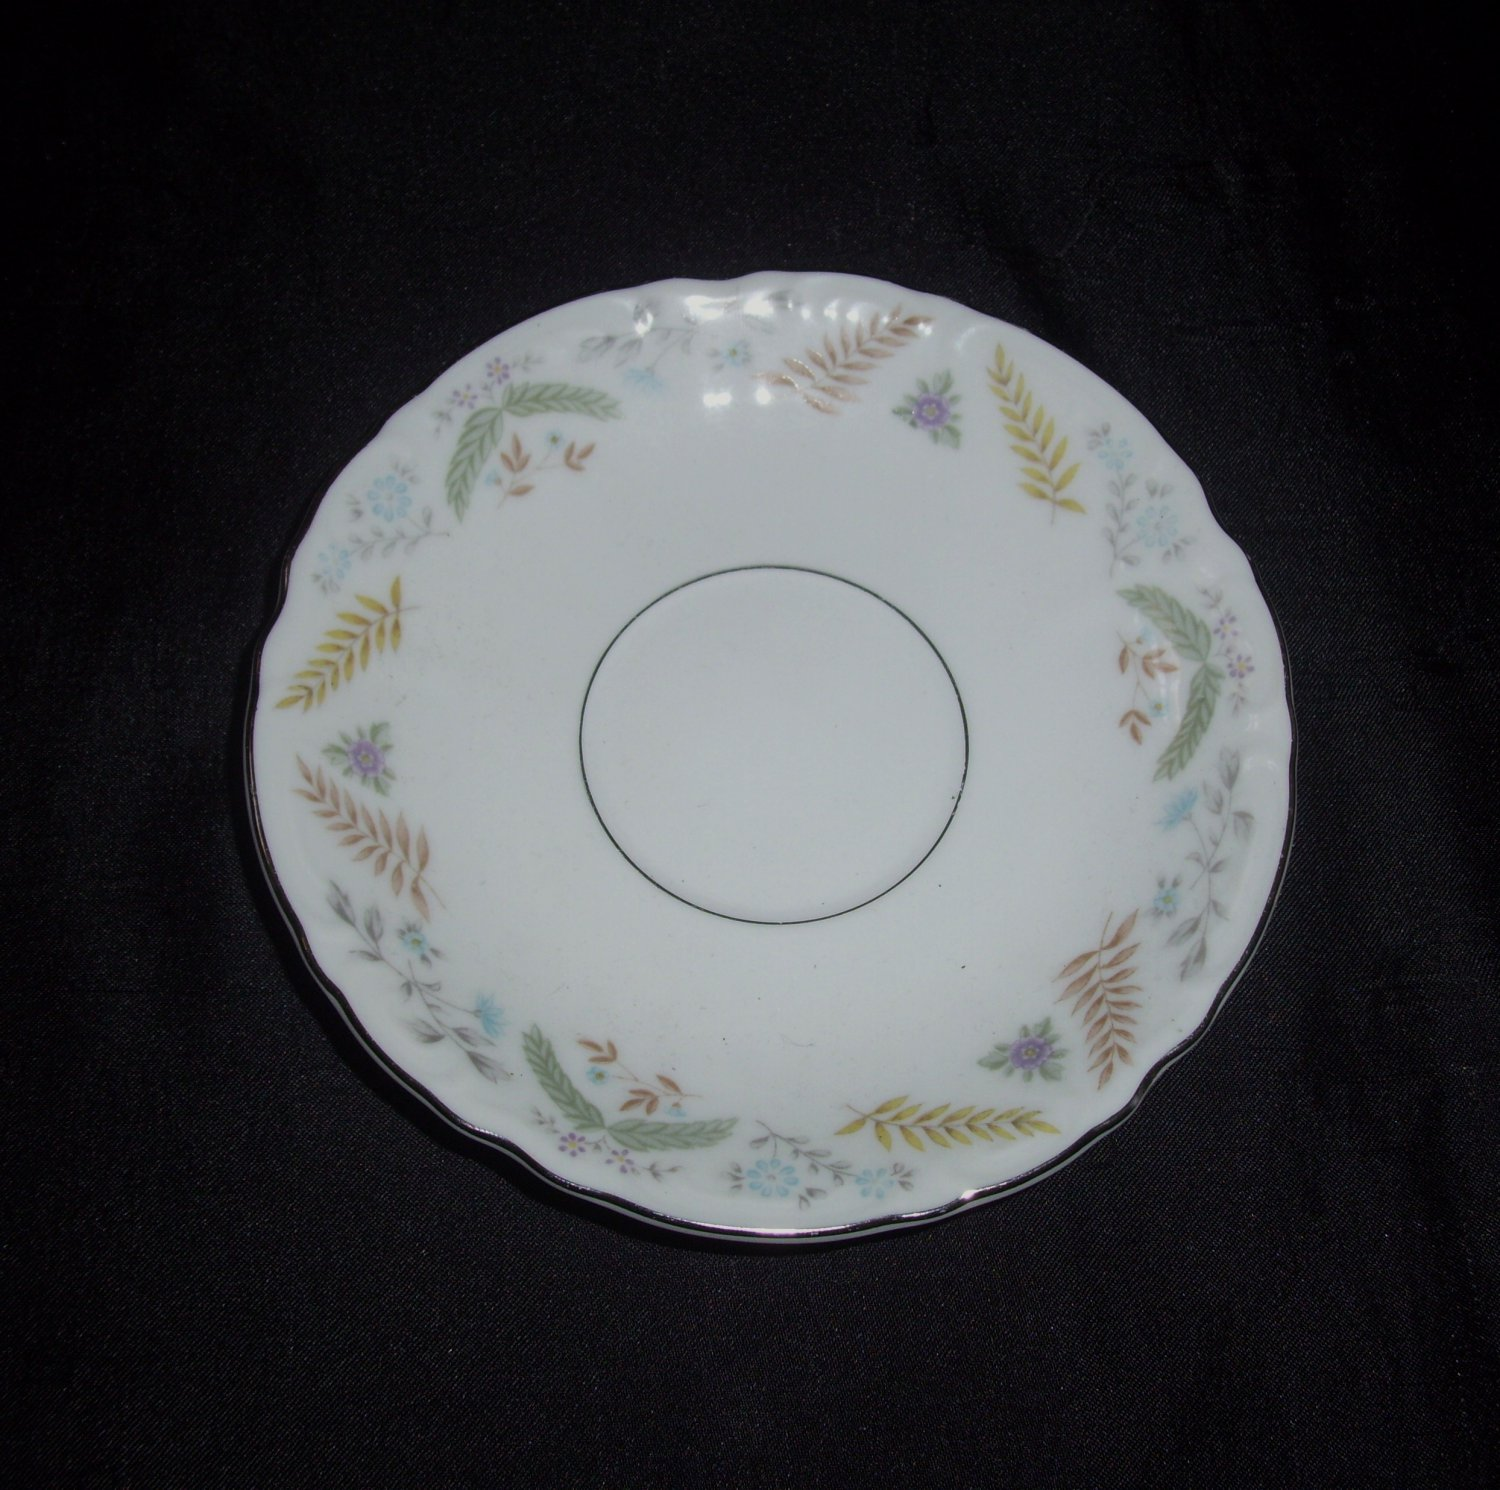 Fine China of Japan Joanne Saucer and Cup Set